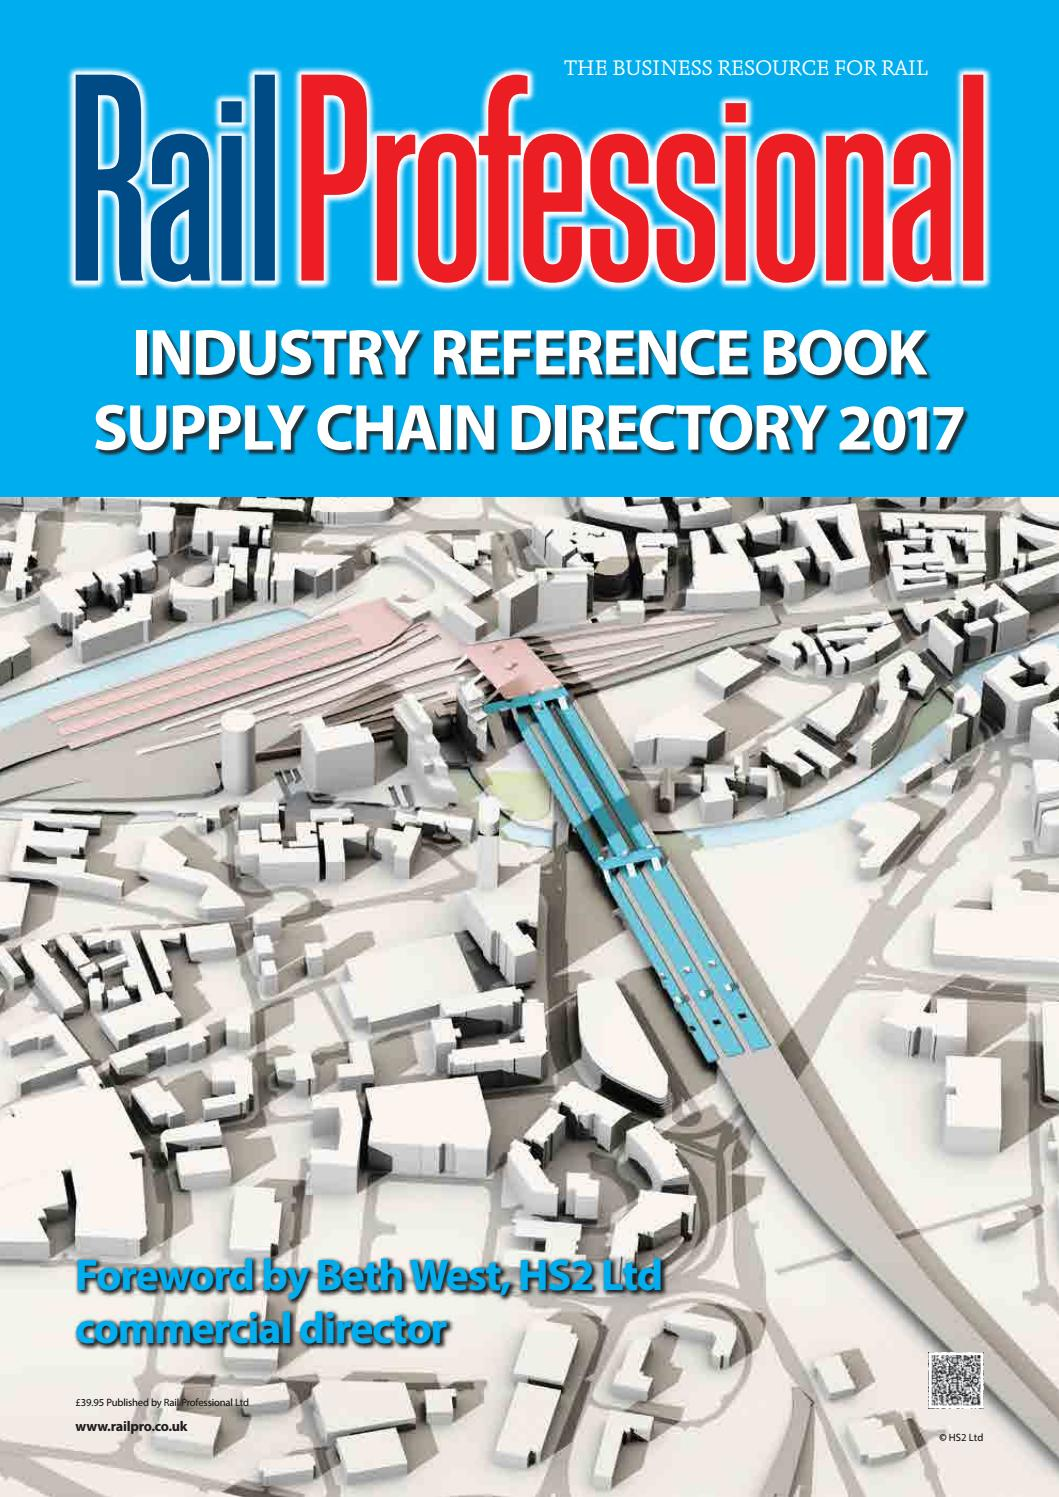 Rail Professional 2017 Yearbook Supply Chain Directory By Electronic Watchdog Kit Quality Electronics Store Kingston Ontario Magazine Issuu